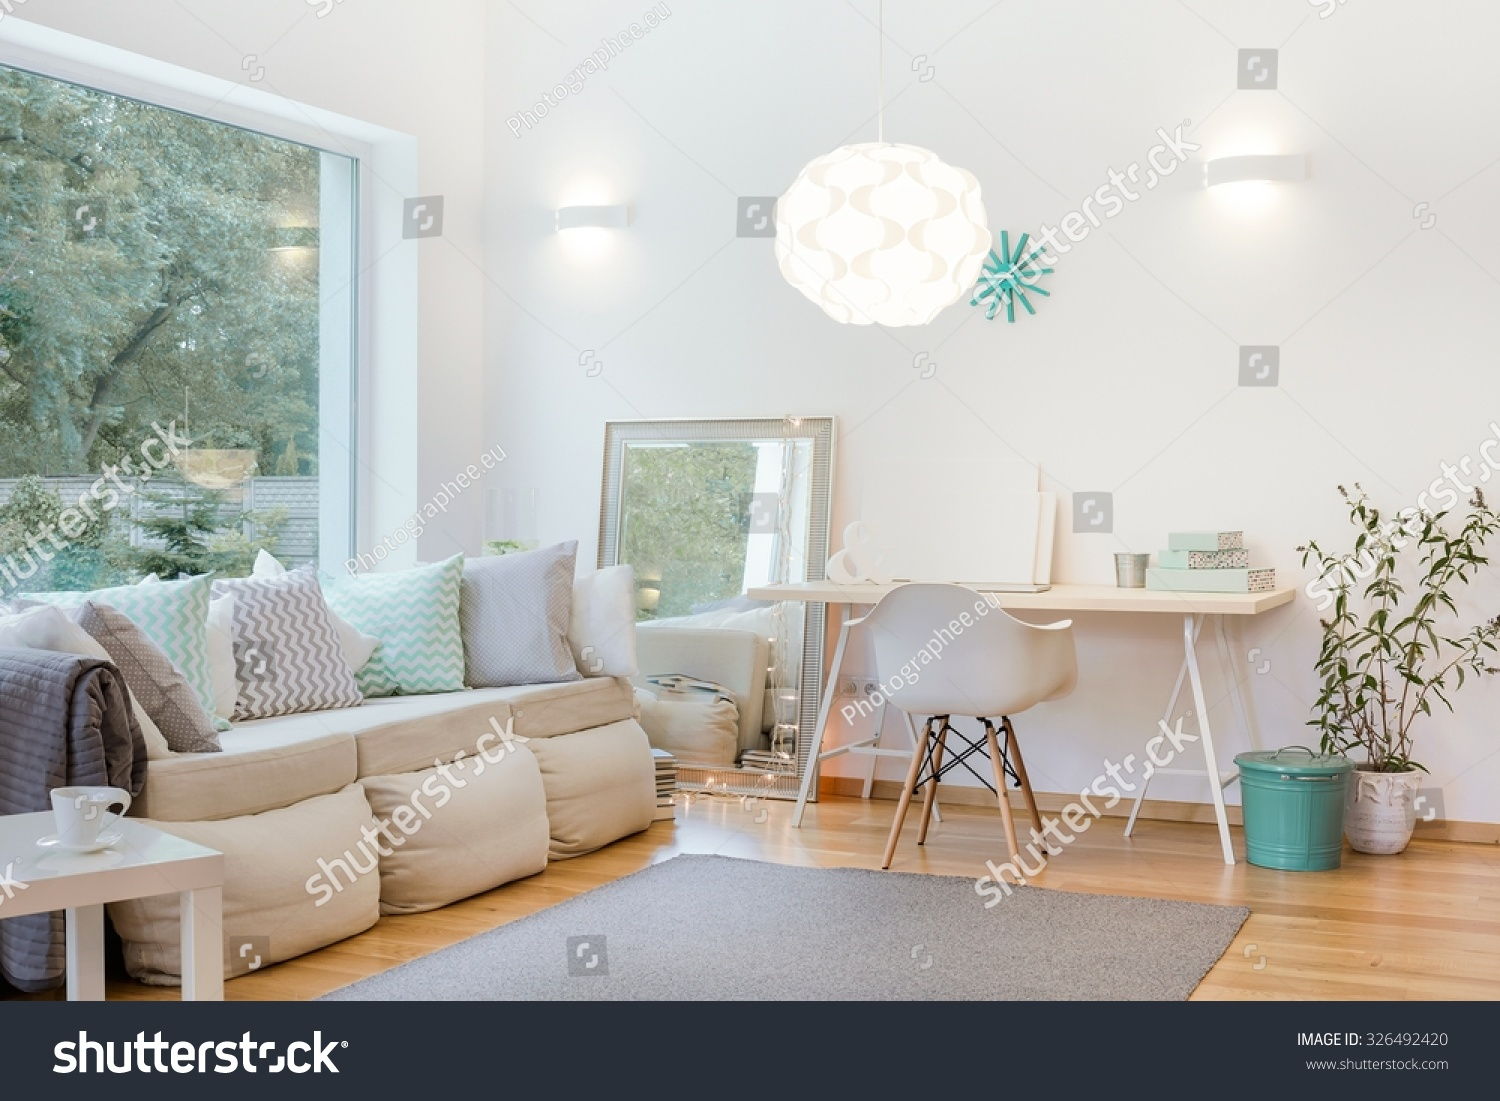 Horizontal Picture Bright Living Room Arrangement Stock Photo ...